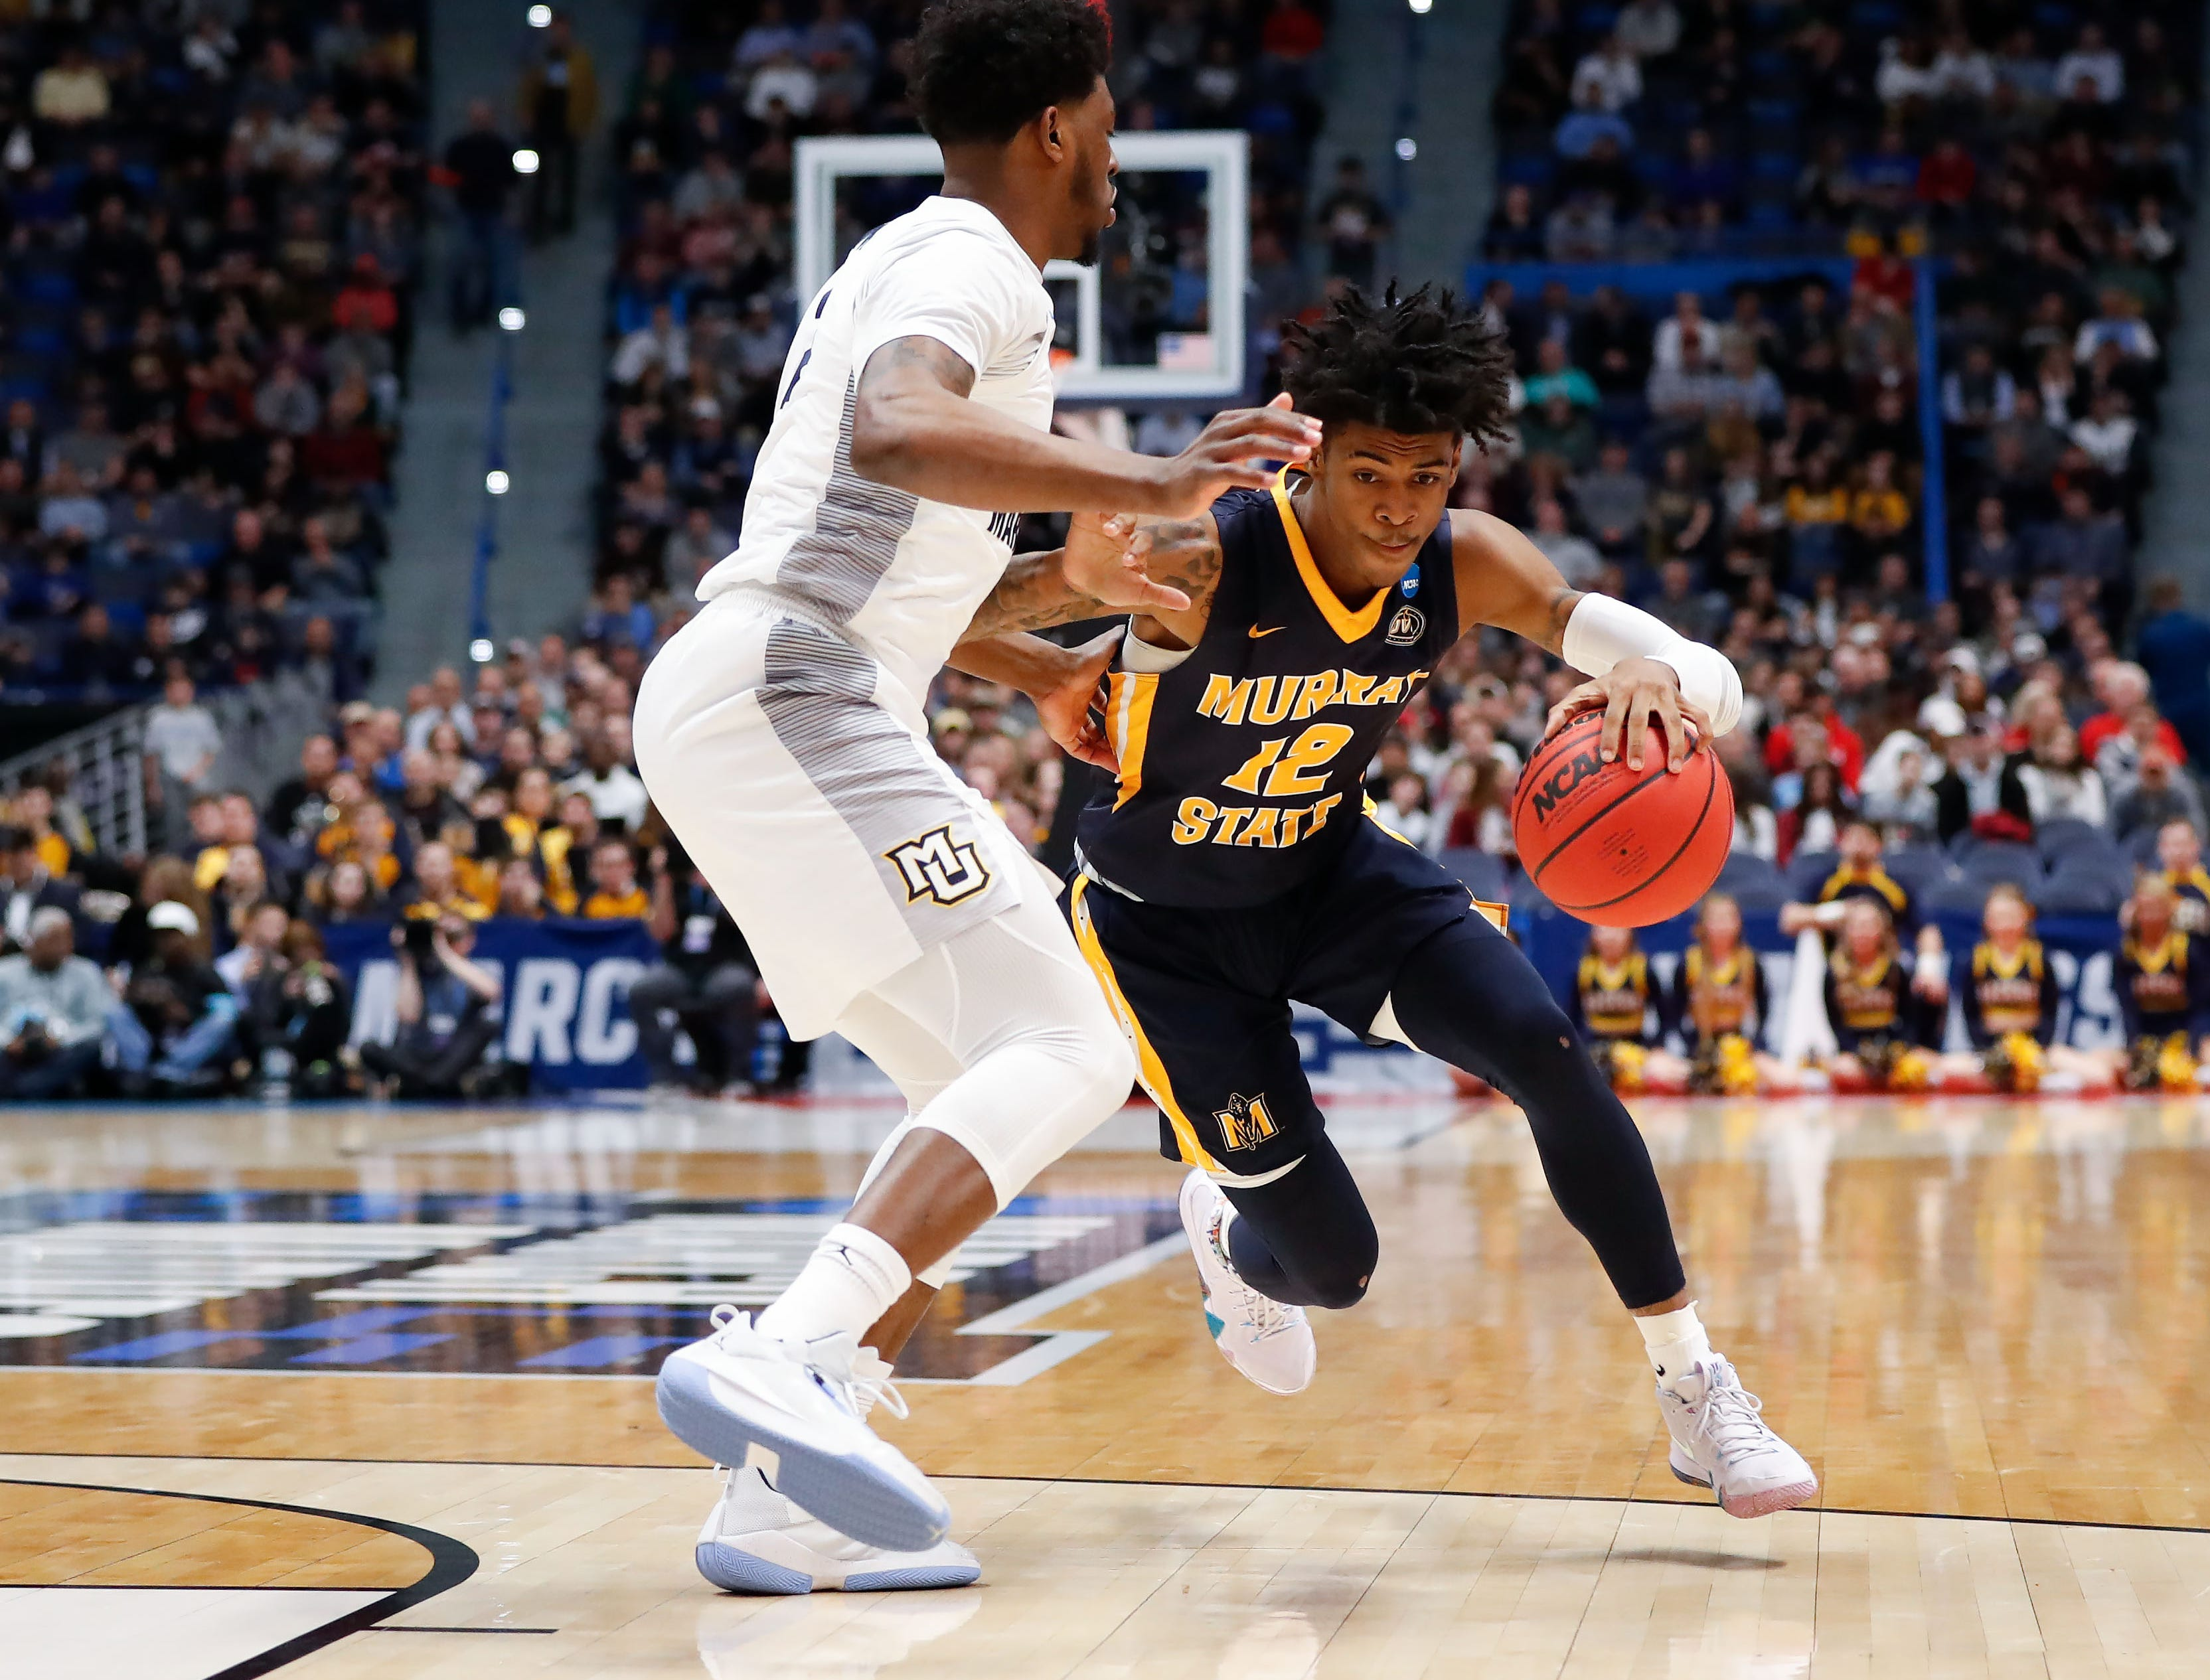 Mar 21, 2019; Hartford, CT, USA; Murray State Racers guard Ja Morant (12) drives against Marquette Golden Eagles forward Sacar Anim (2) during the first half of a game in the first round of the 2019 NCAA Tournament at XL Center. Mandatory Credit: David Butler II-USA TODAY Sports